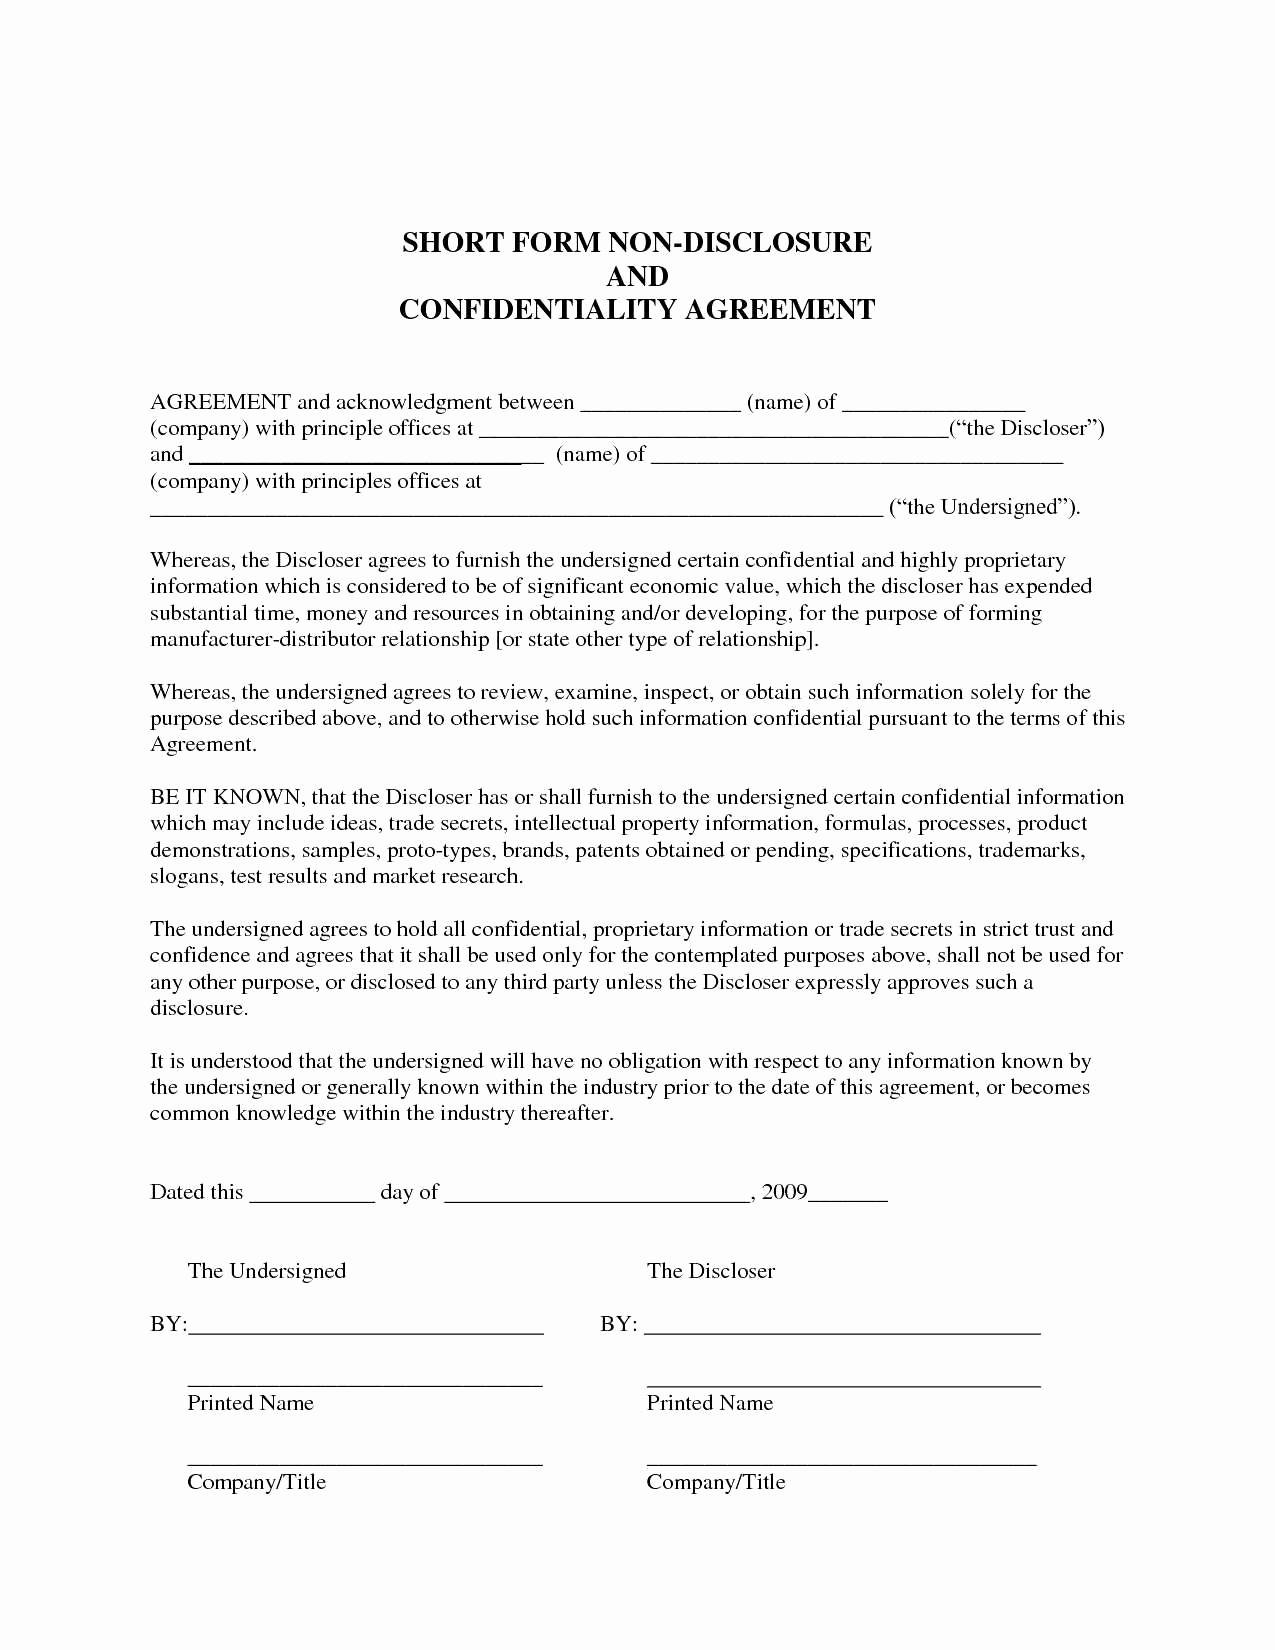 Letter Of Agreement Template - Co Promotion Agreement Template New Co Promotion Agreement Template